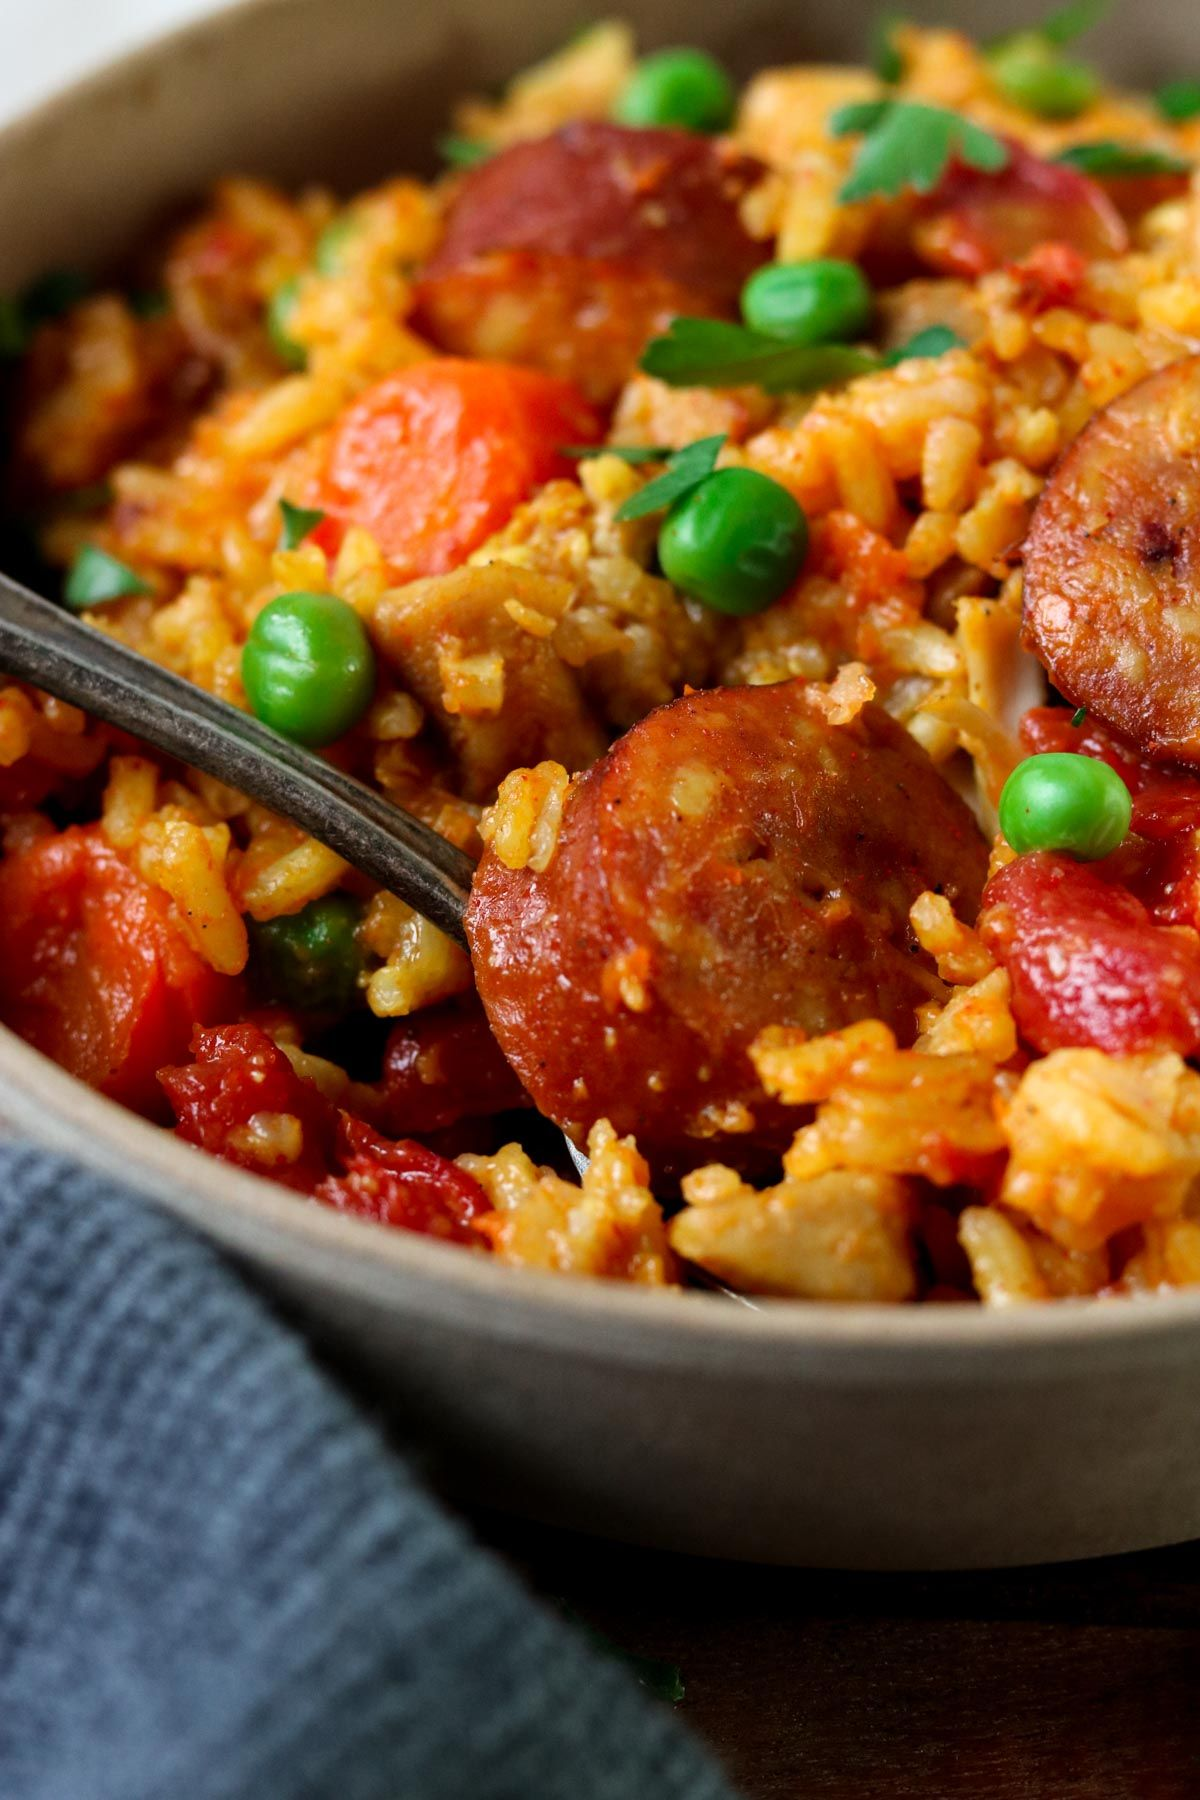 Instant Pot Cajun Rice with Chicken and Sausage If you have an Instant Pot this is the next recipe you need to make!!! Instant Pot Cajun Rice with Chicken and Sausages is BURSTING with flavor! It makes an amazing dinner whether it is a busy night, a weekend dinner at home, or entertaining friends.